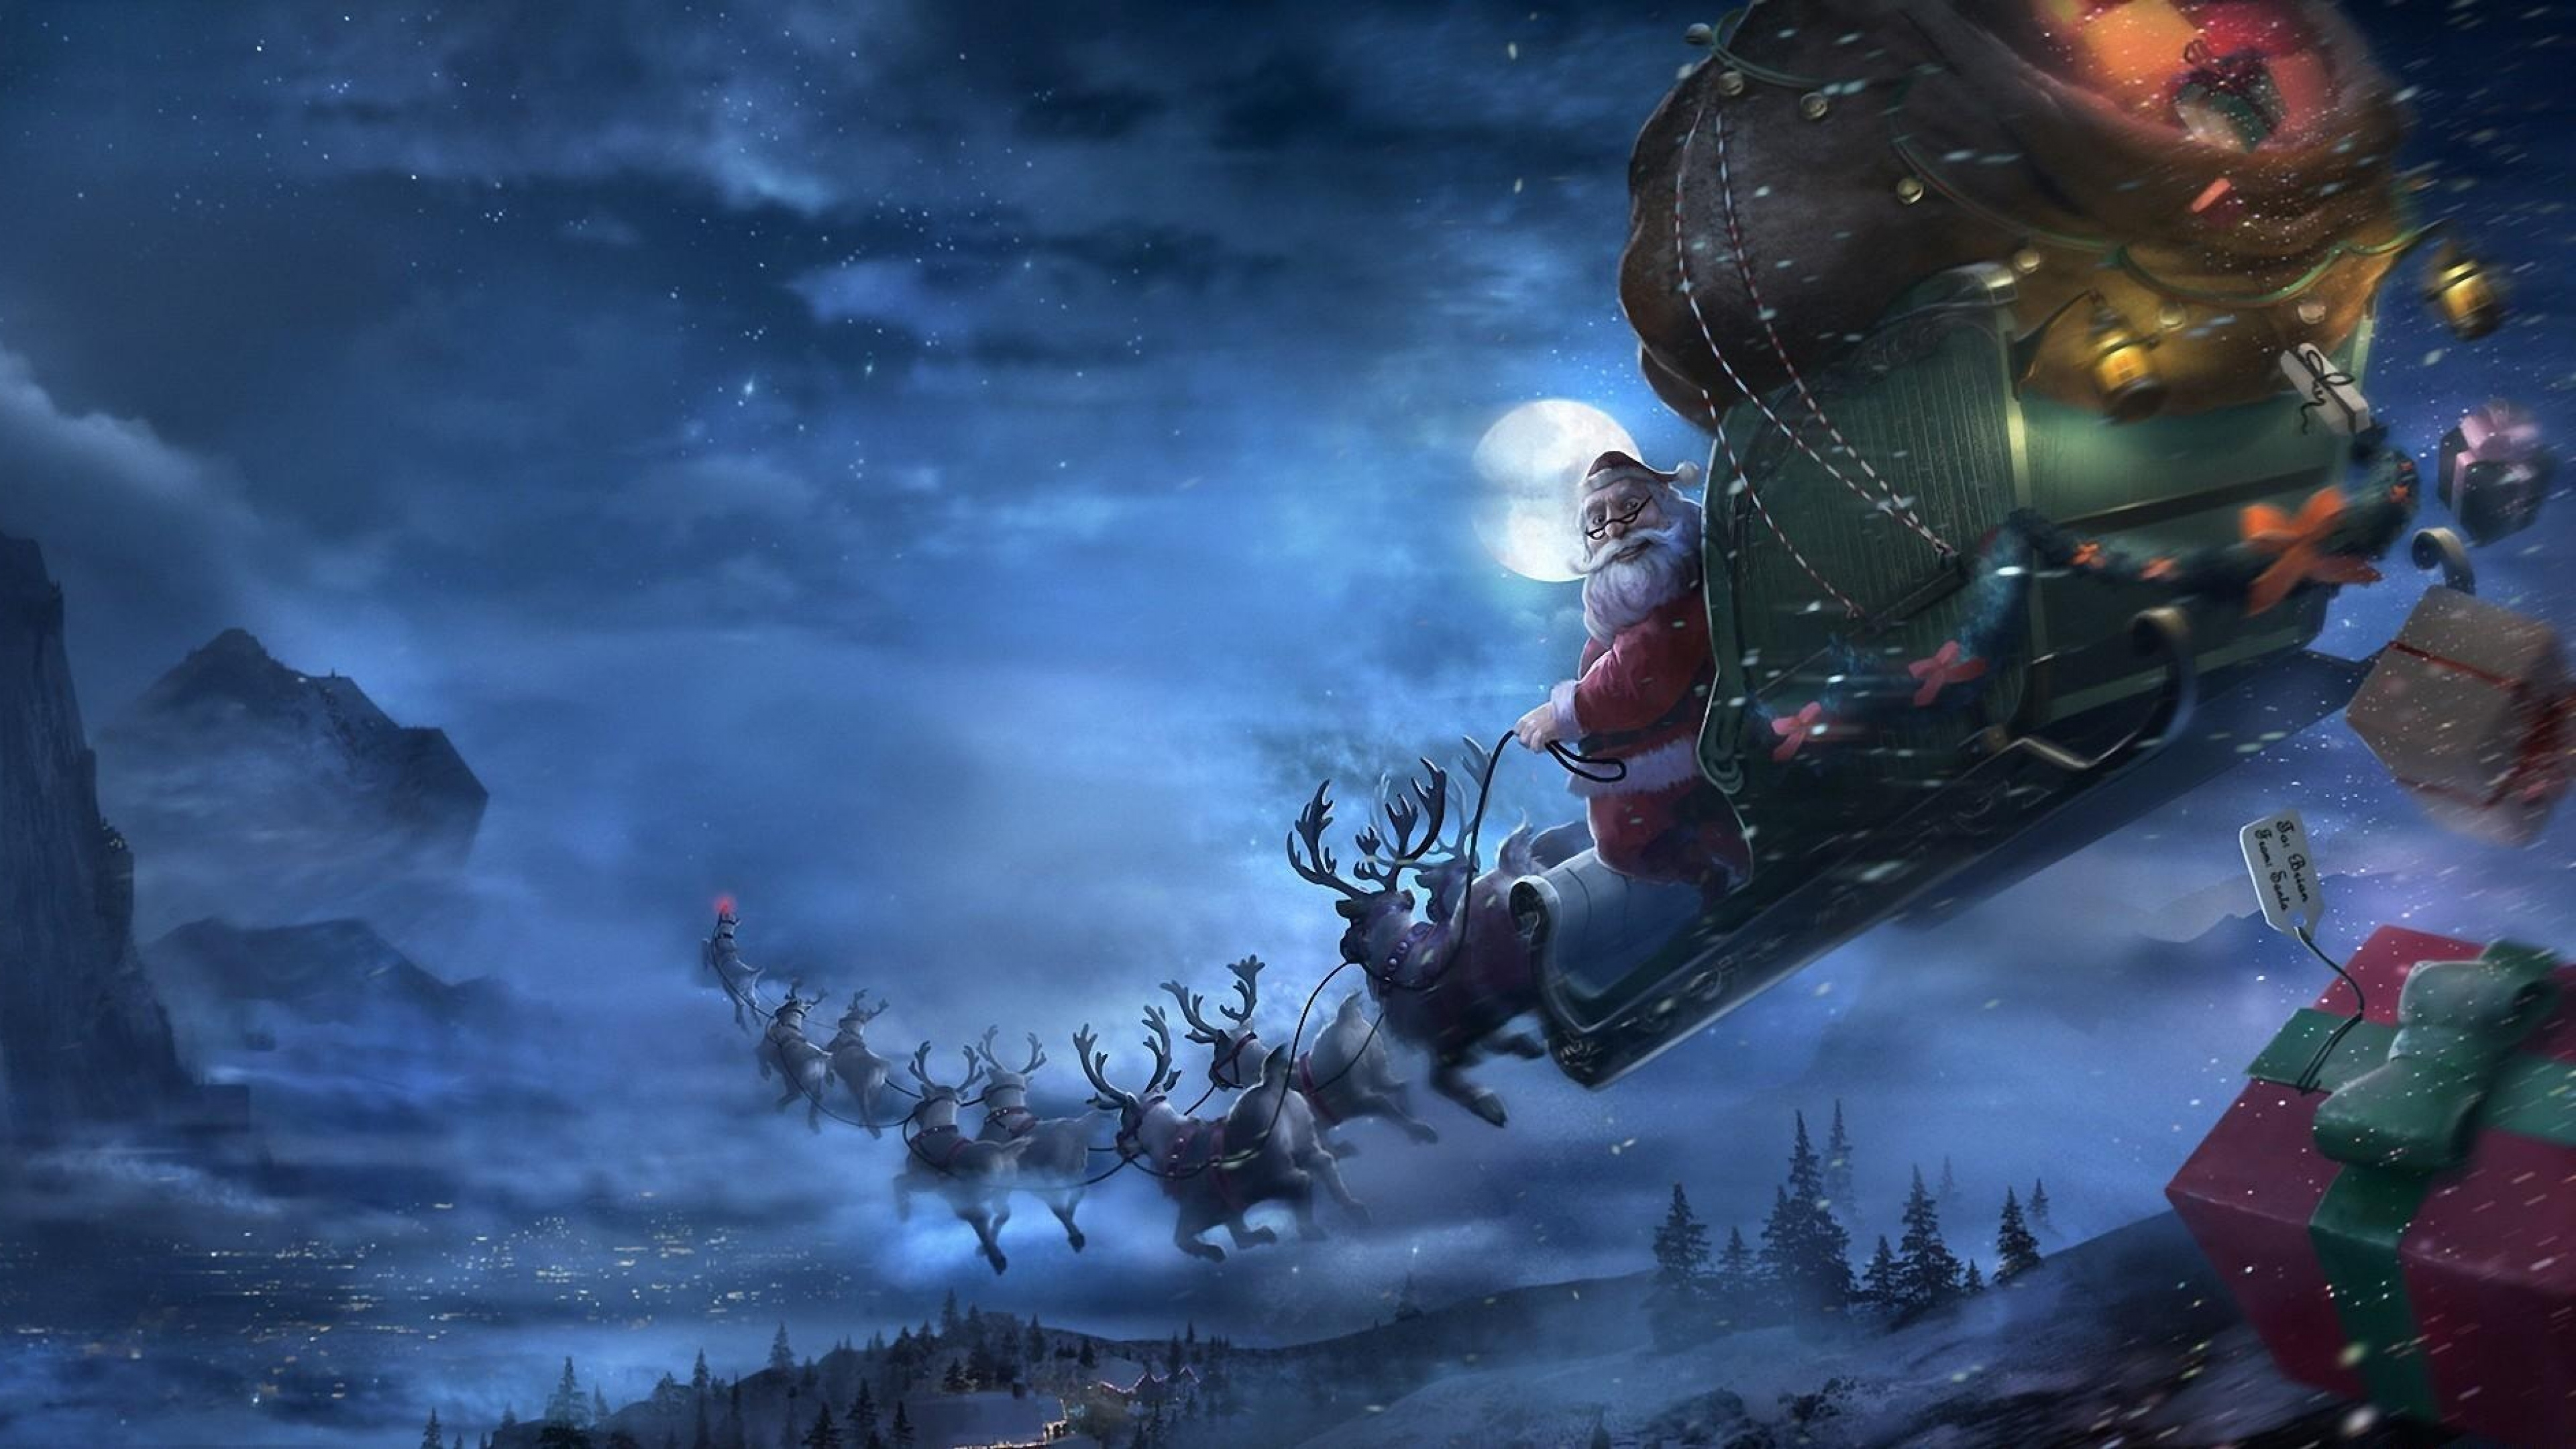 Download Top 10 4K Christmas Wallpapers 2015 | AxeeTech